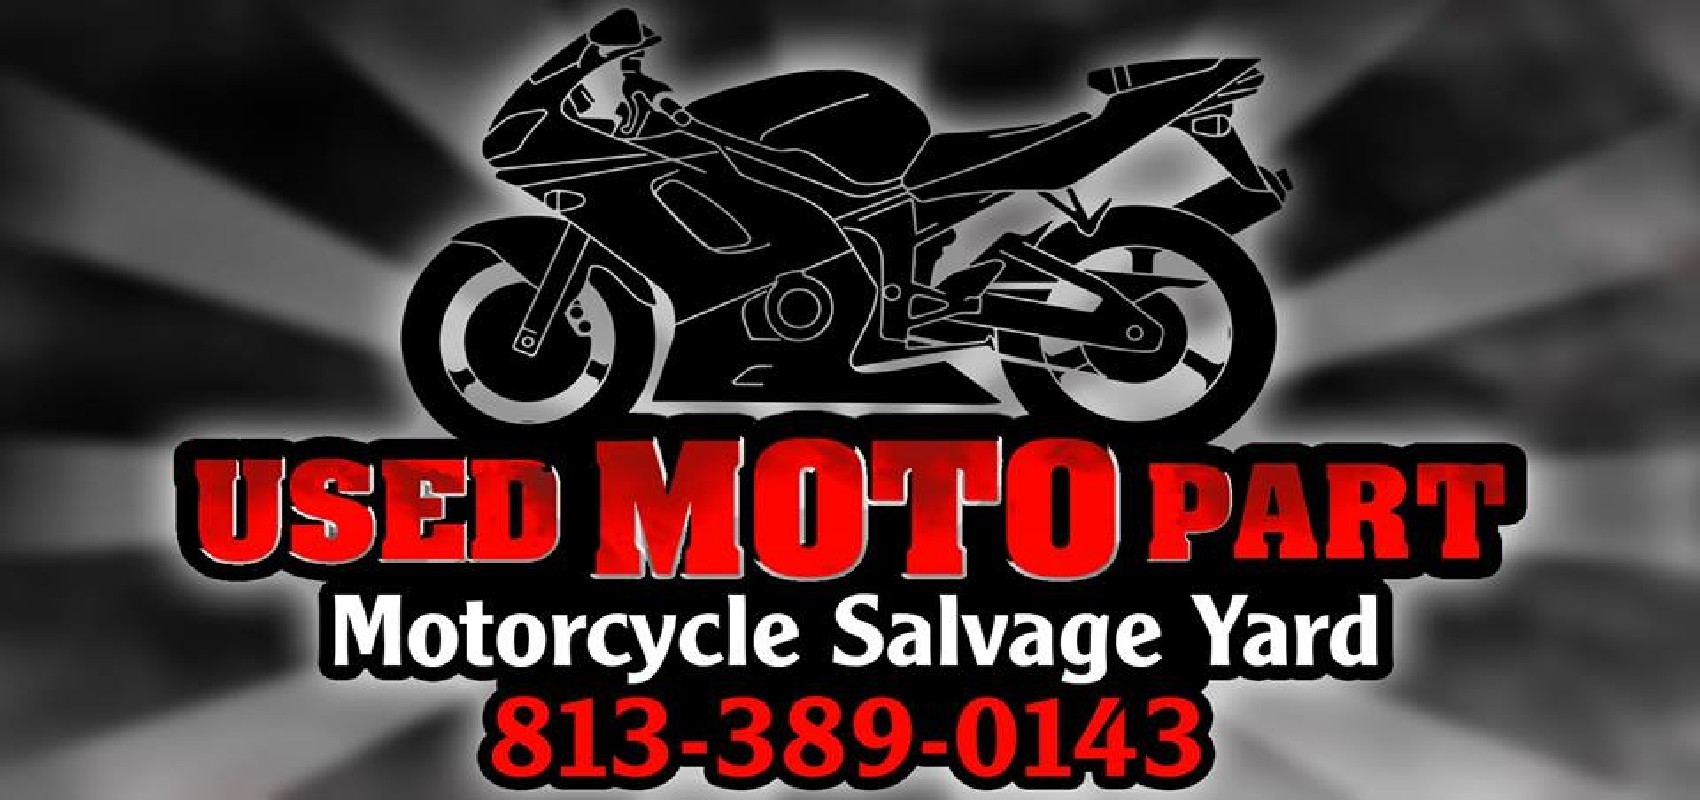 Used Moto Part,Used Motorcycle Parts Warehouse Tampa salvage yard